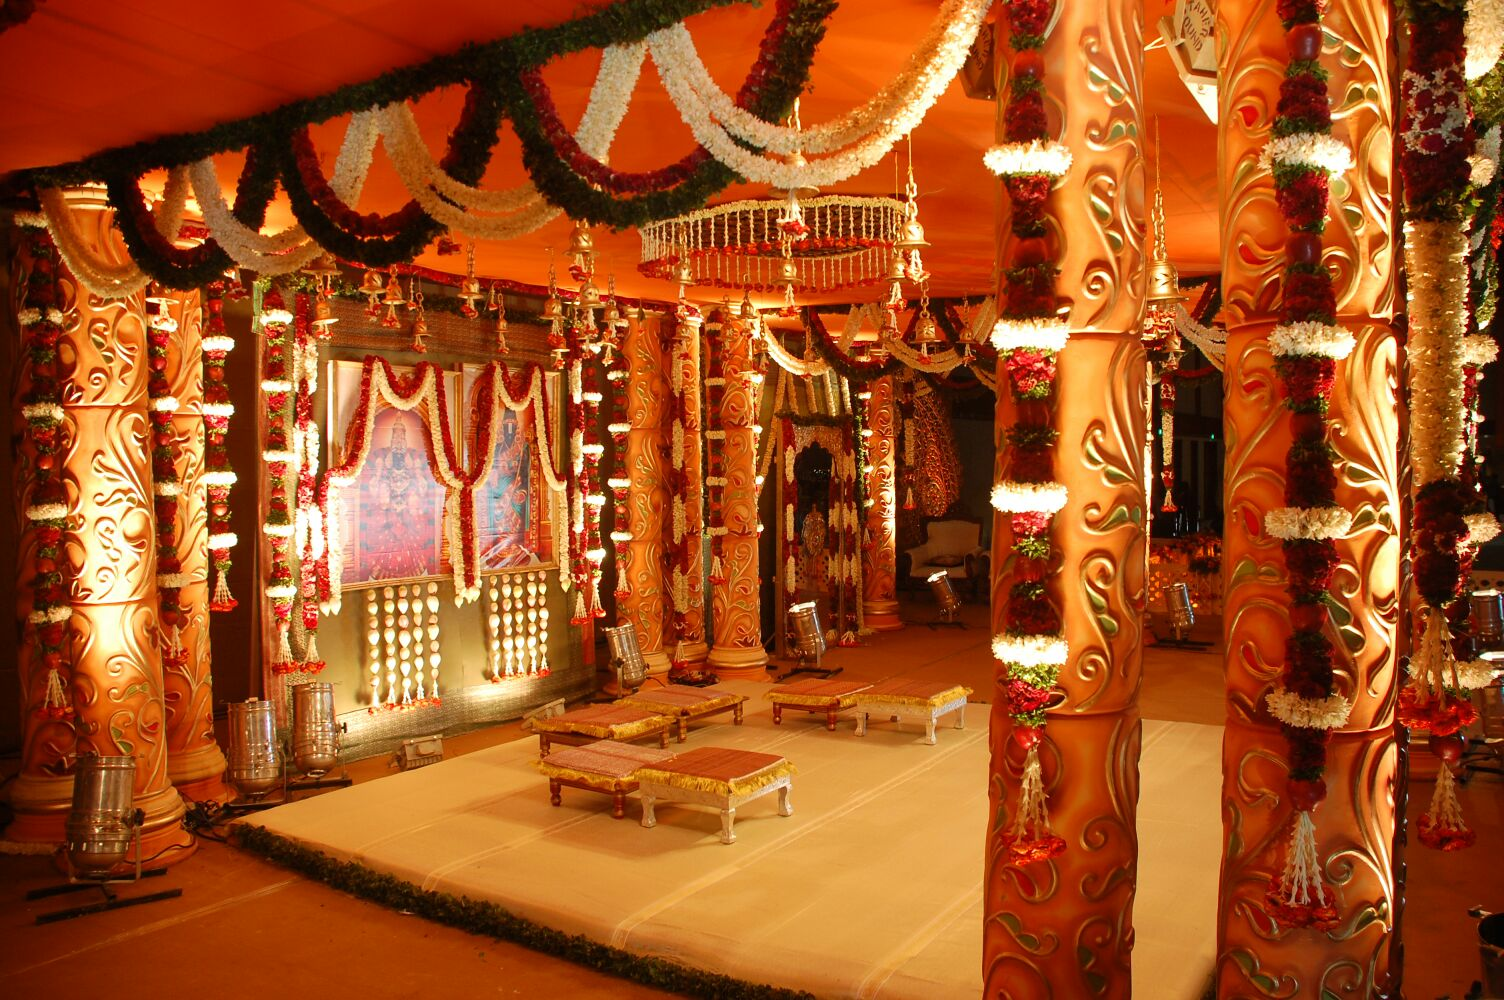 Wedding Planner Organizer In Hyderabad  Fashionworldhub. Wedding Reception Decorations Colors. Elegant Wedding Showers. Planning A Japanese Wedding. Wedding Invitation Made Philippines. Wedding Dresses Magazine Street New Orleans. Wedding Photos Divyanka. Wedding Ulster Hall. Tk_center Wedding Planner Organizer